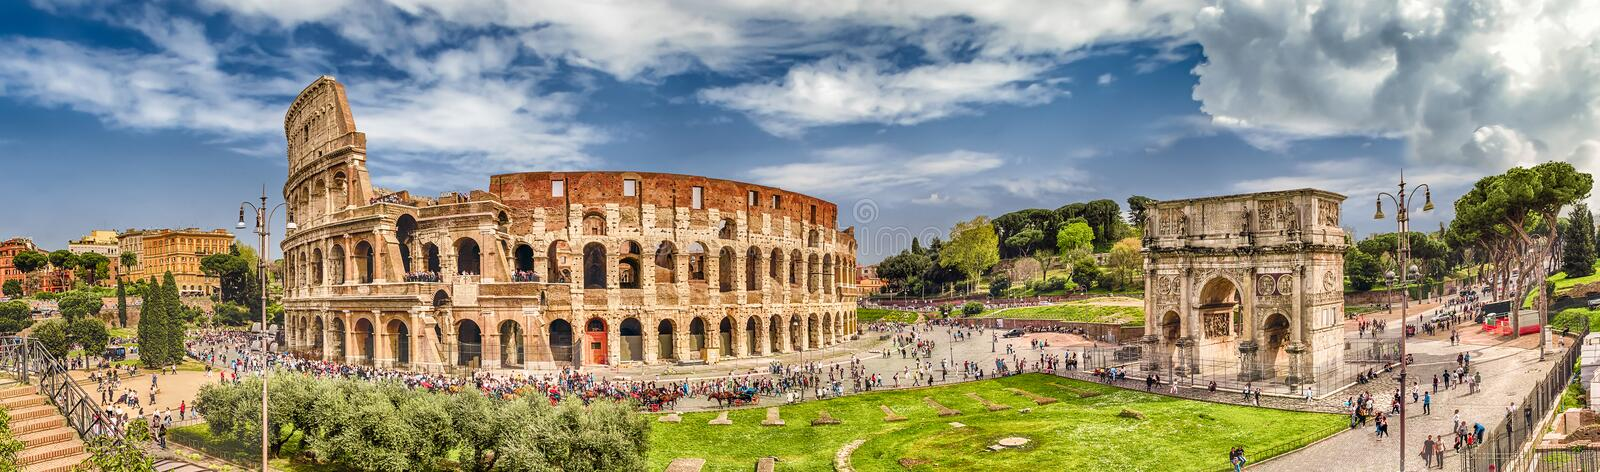 Panoramic view of the Colosseum and Arch of Constantine, Rome stock image